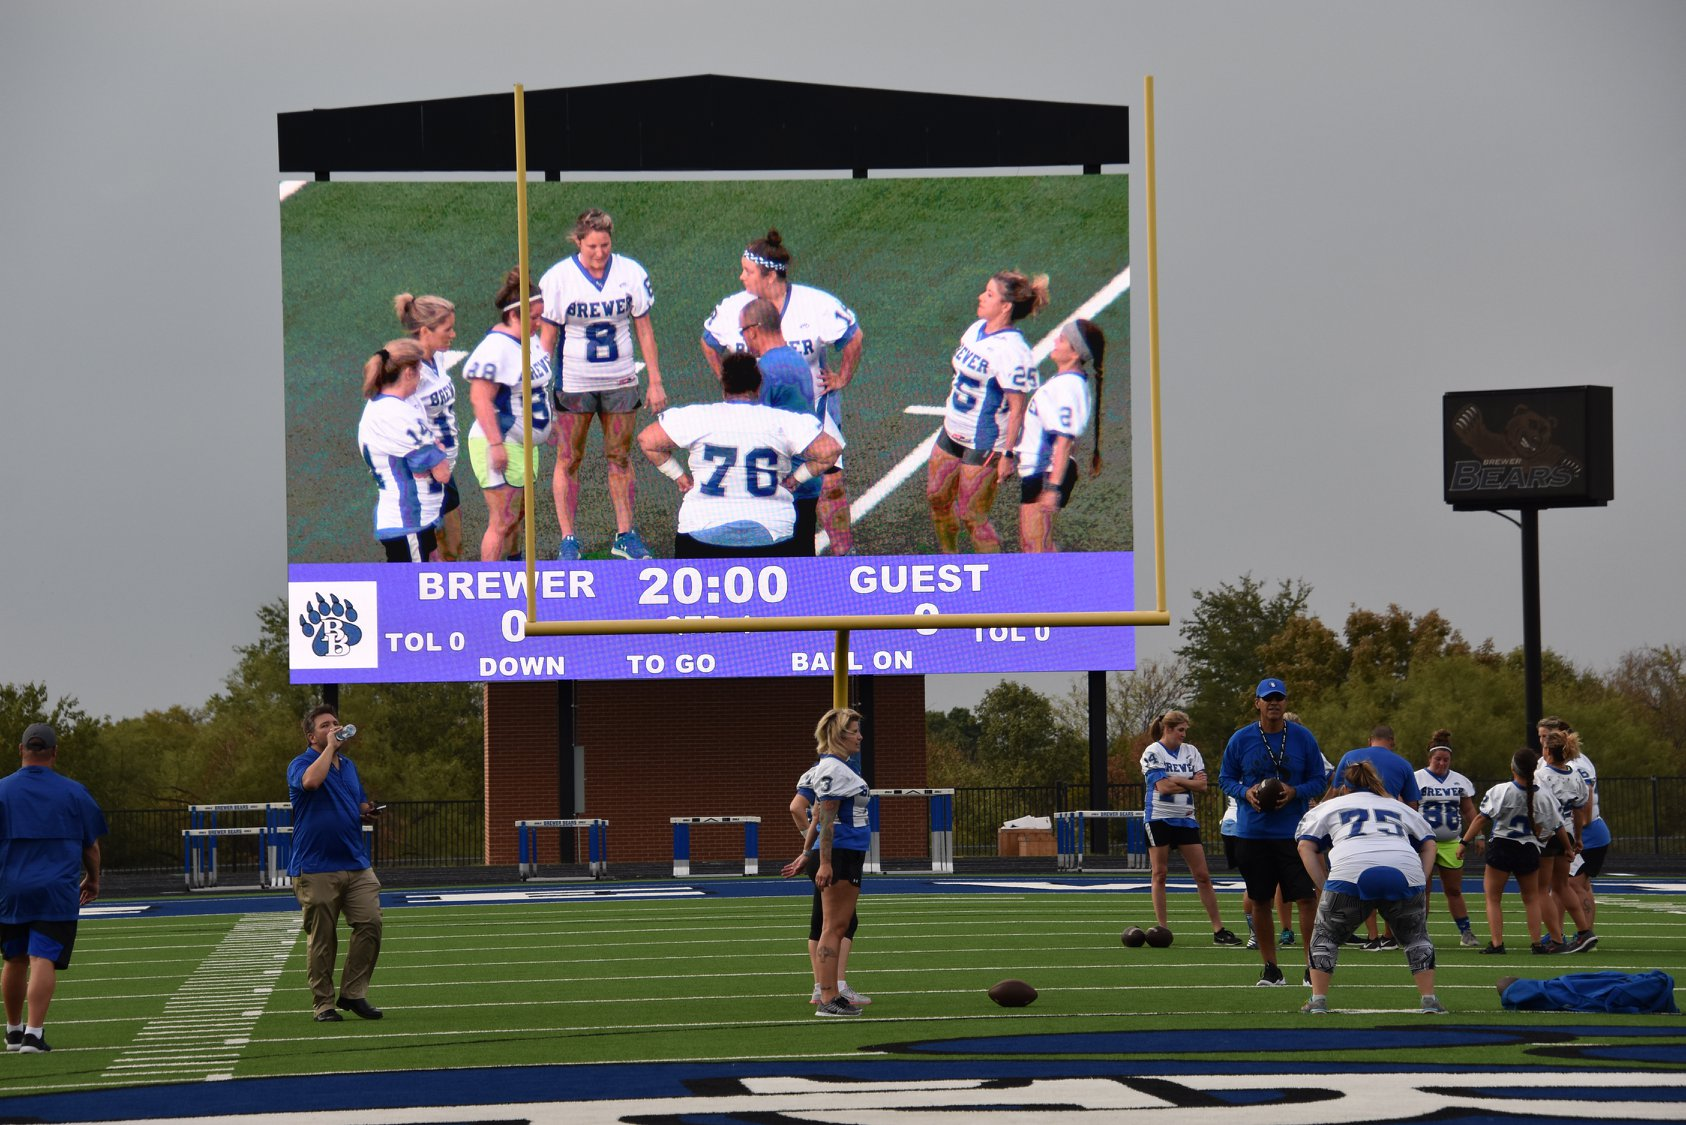 Showing female football players on a video scoreboard